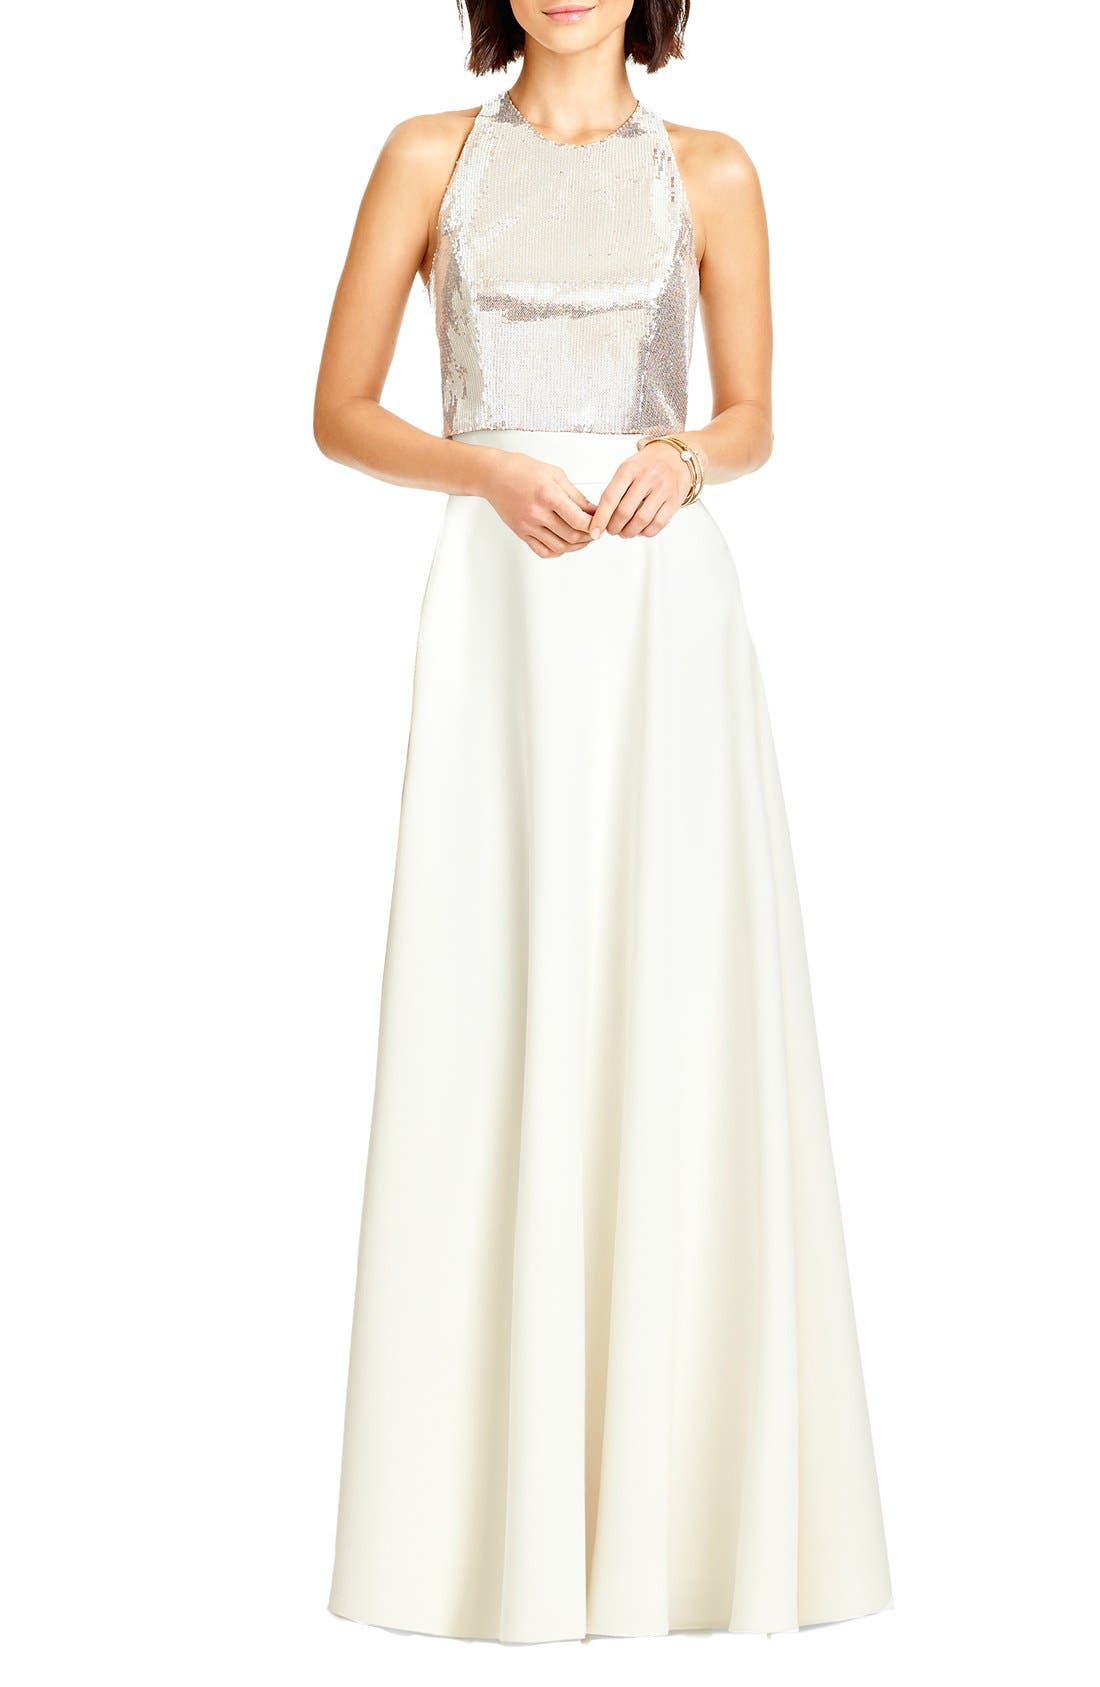 Main Image - Dessy Collection Sequin Halter Top & Long Crepe Skirt